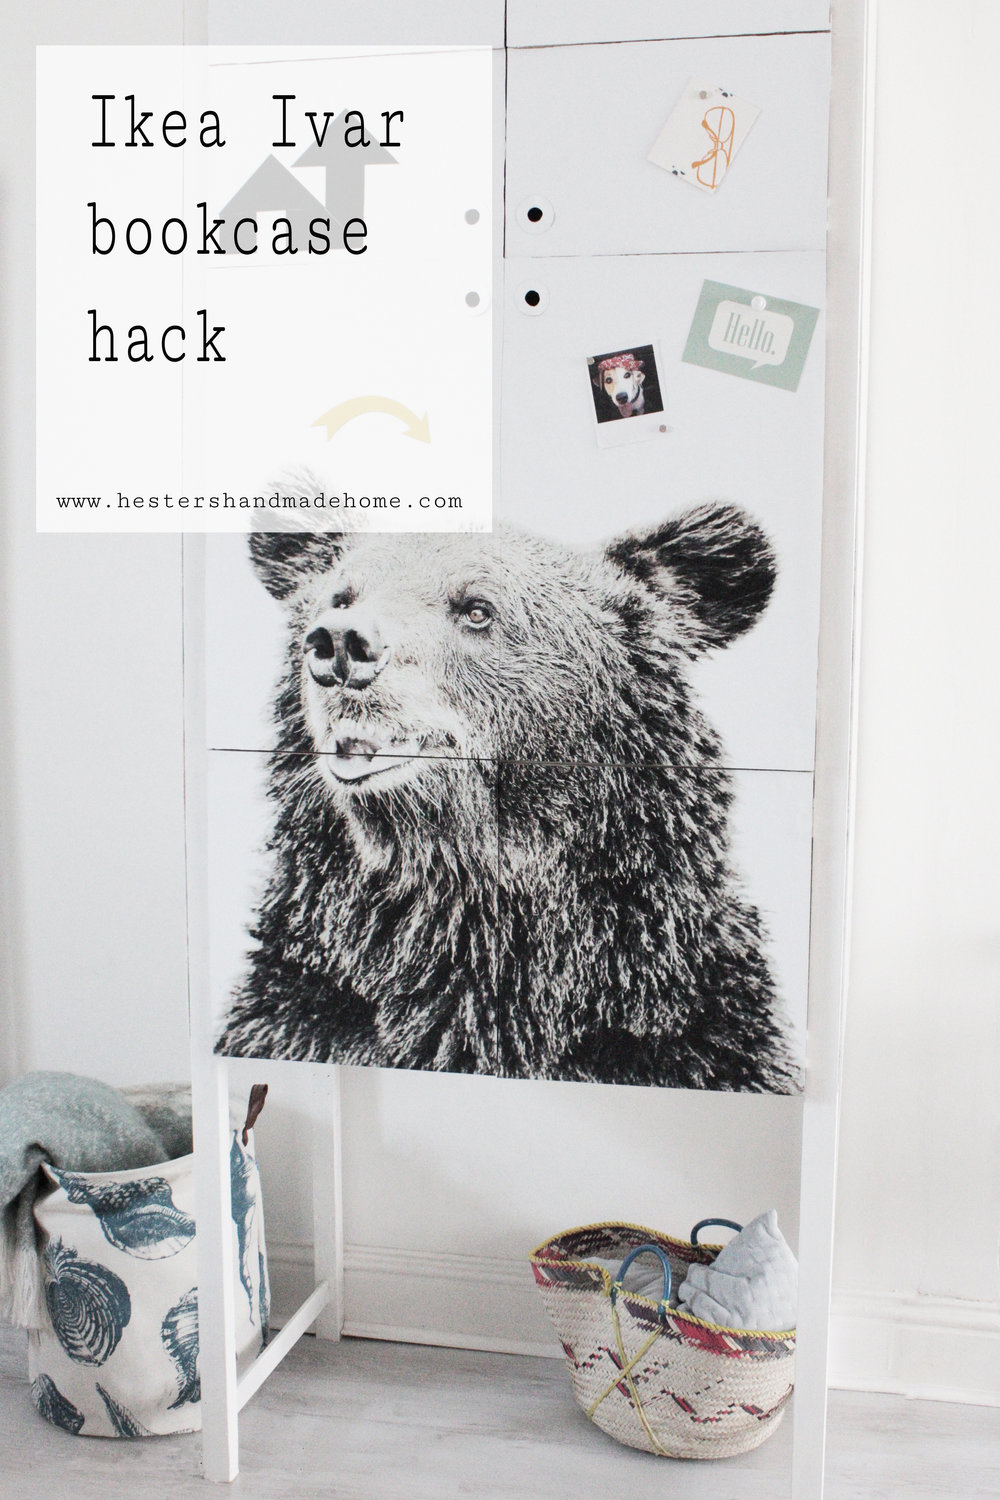 Ikea Ivar bookcase hack tutorial by Hester's handmade Home